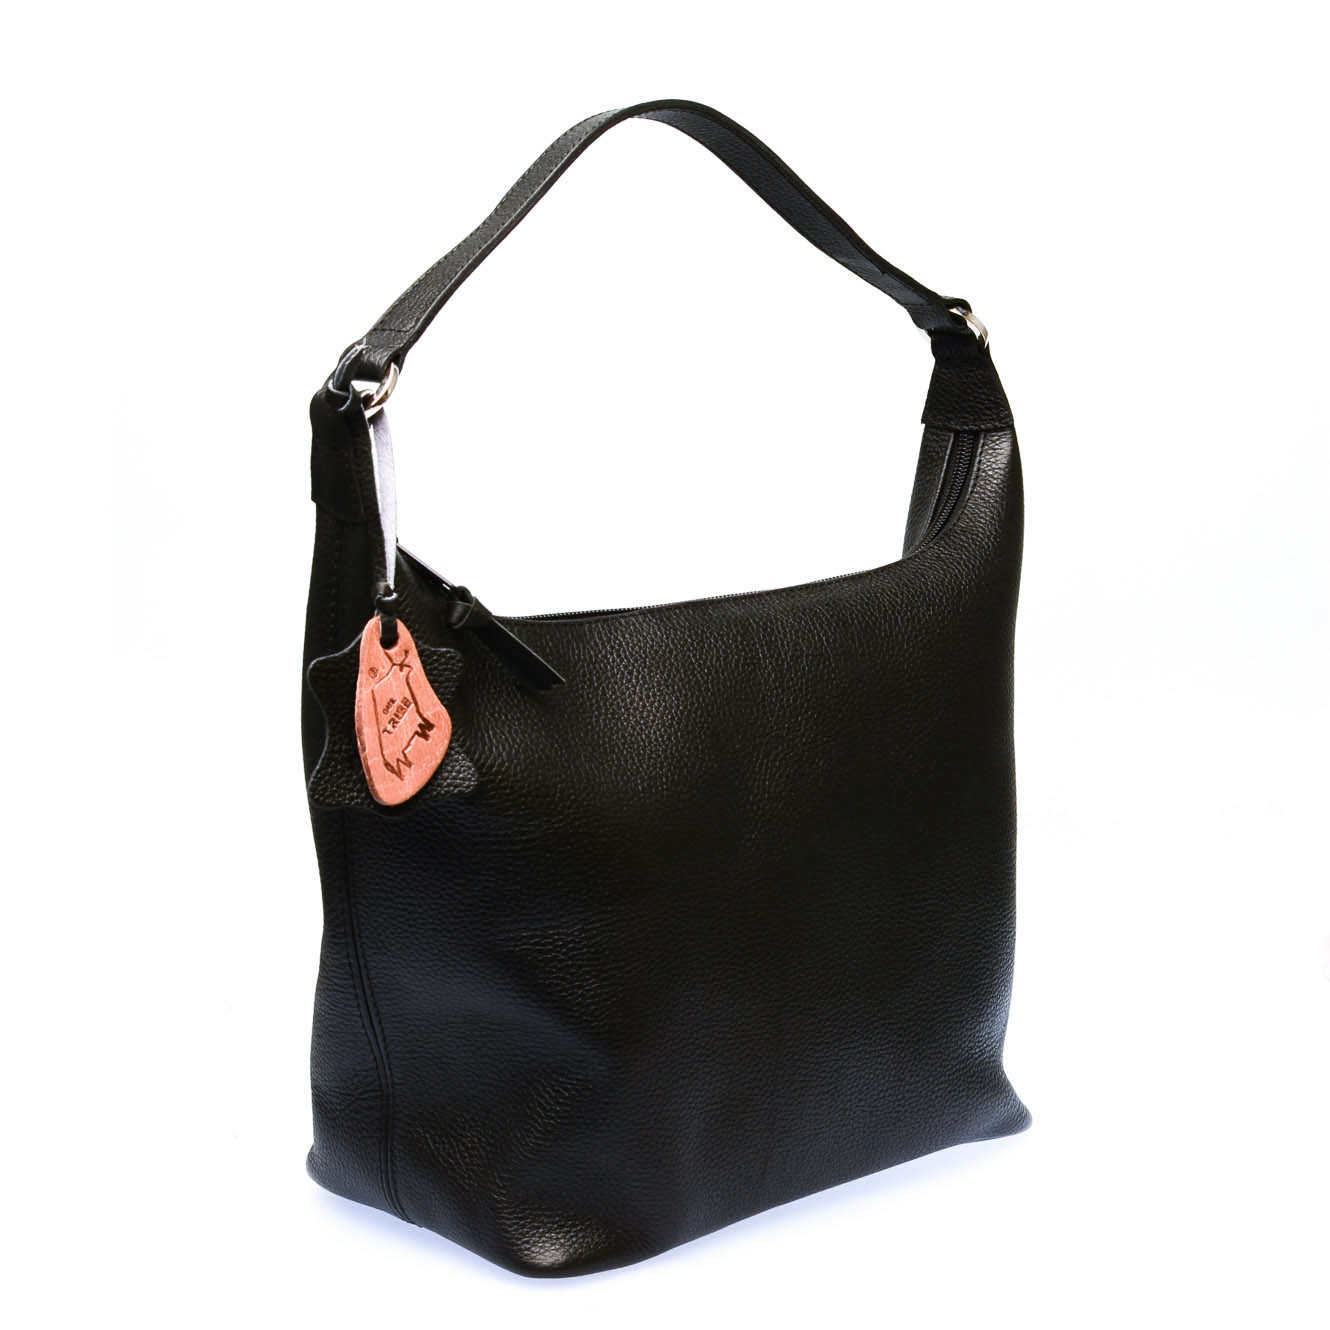 Our Tribe Women's Boat Shaped Tote -776